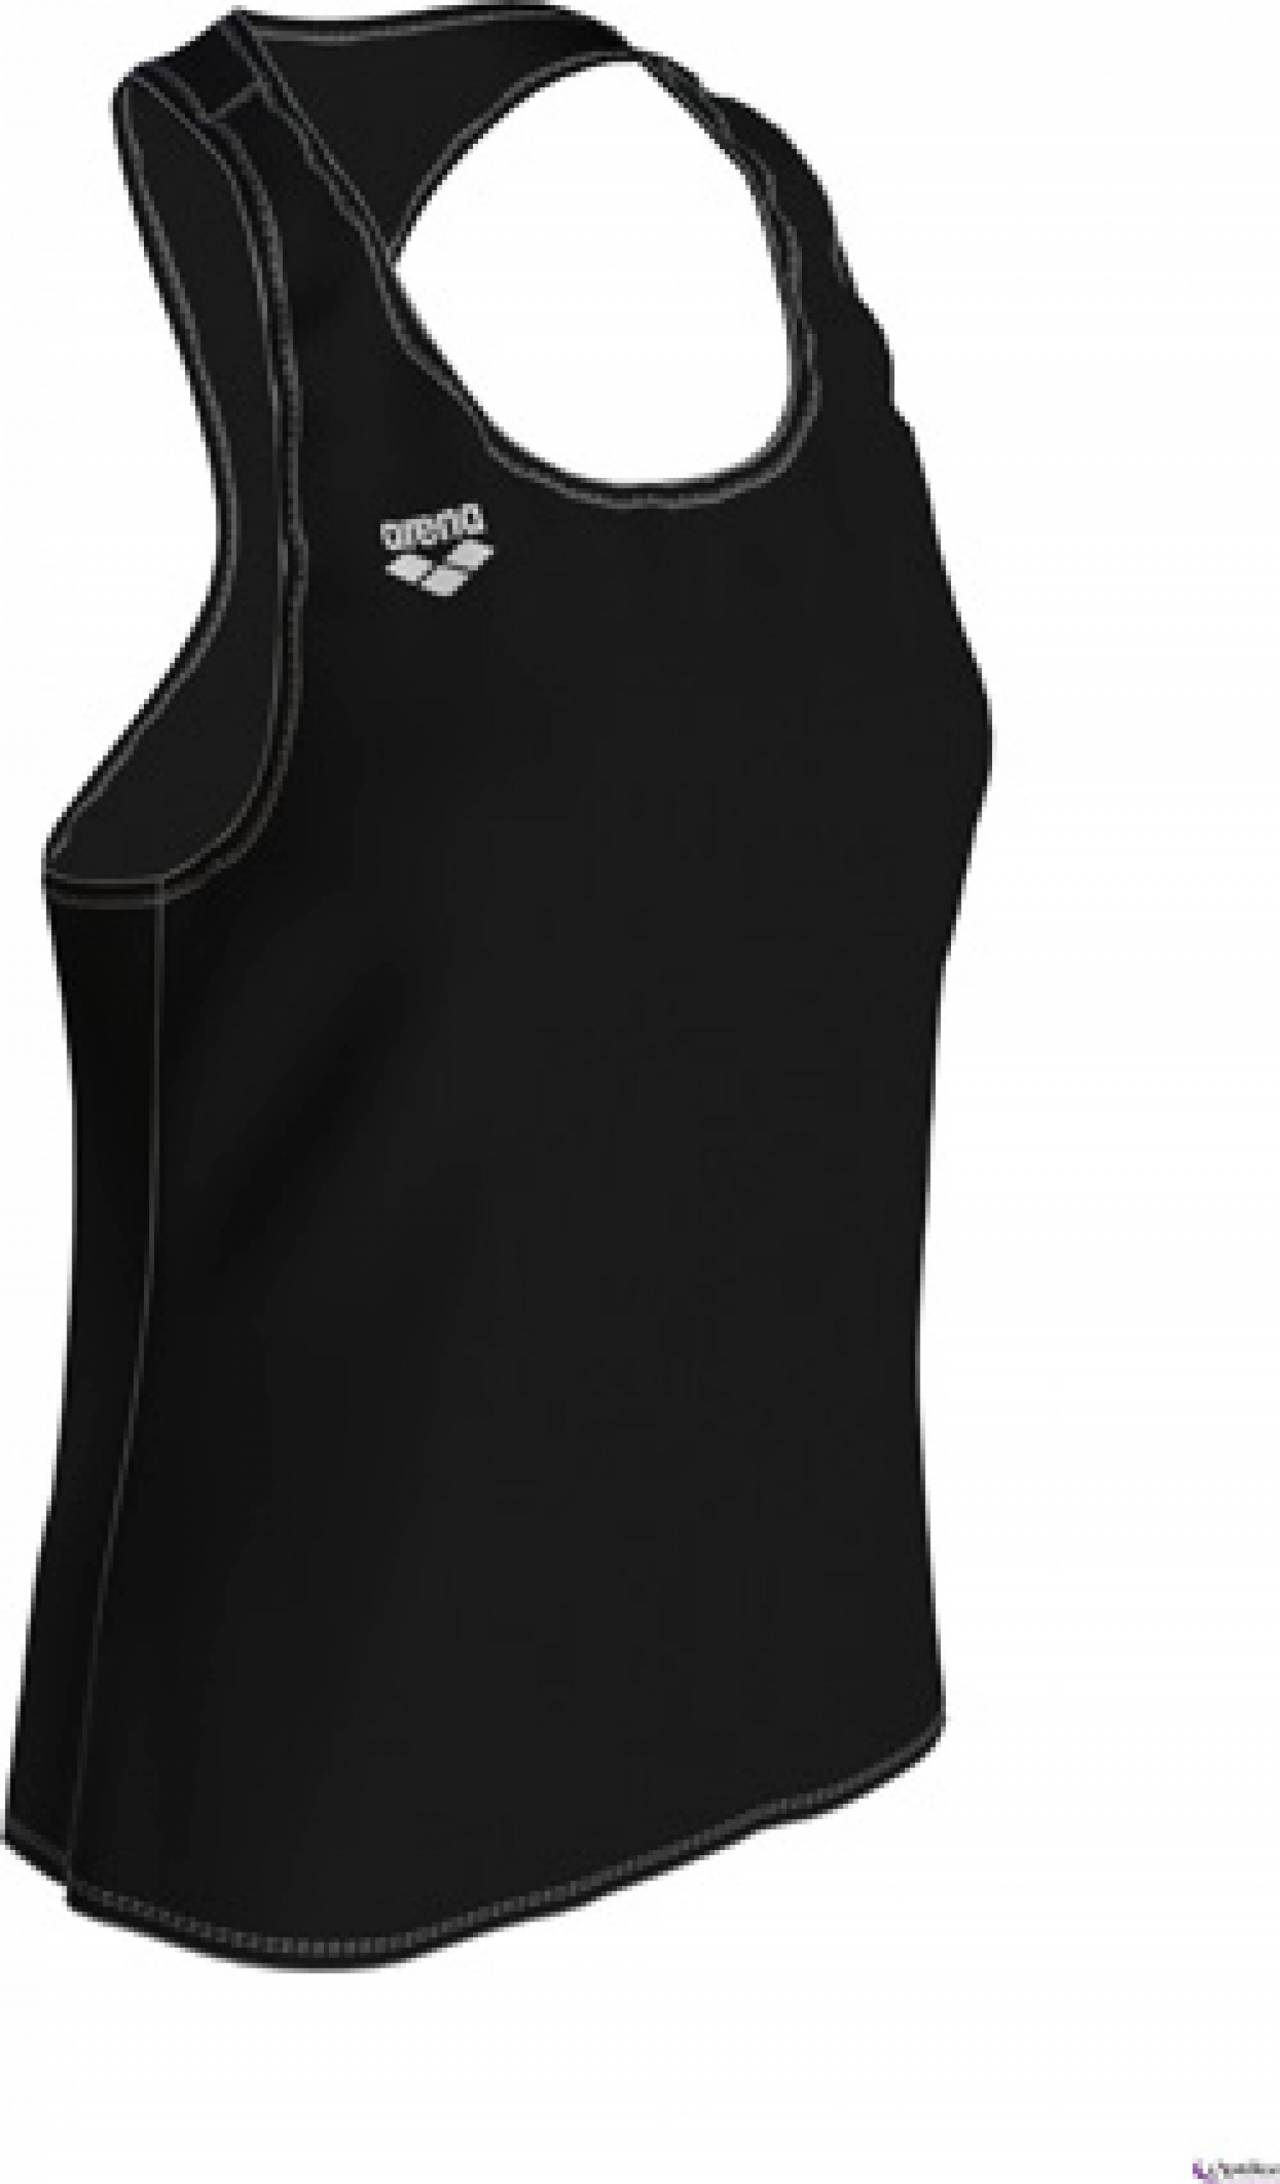 W GYM TANK TOP SOLID